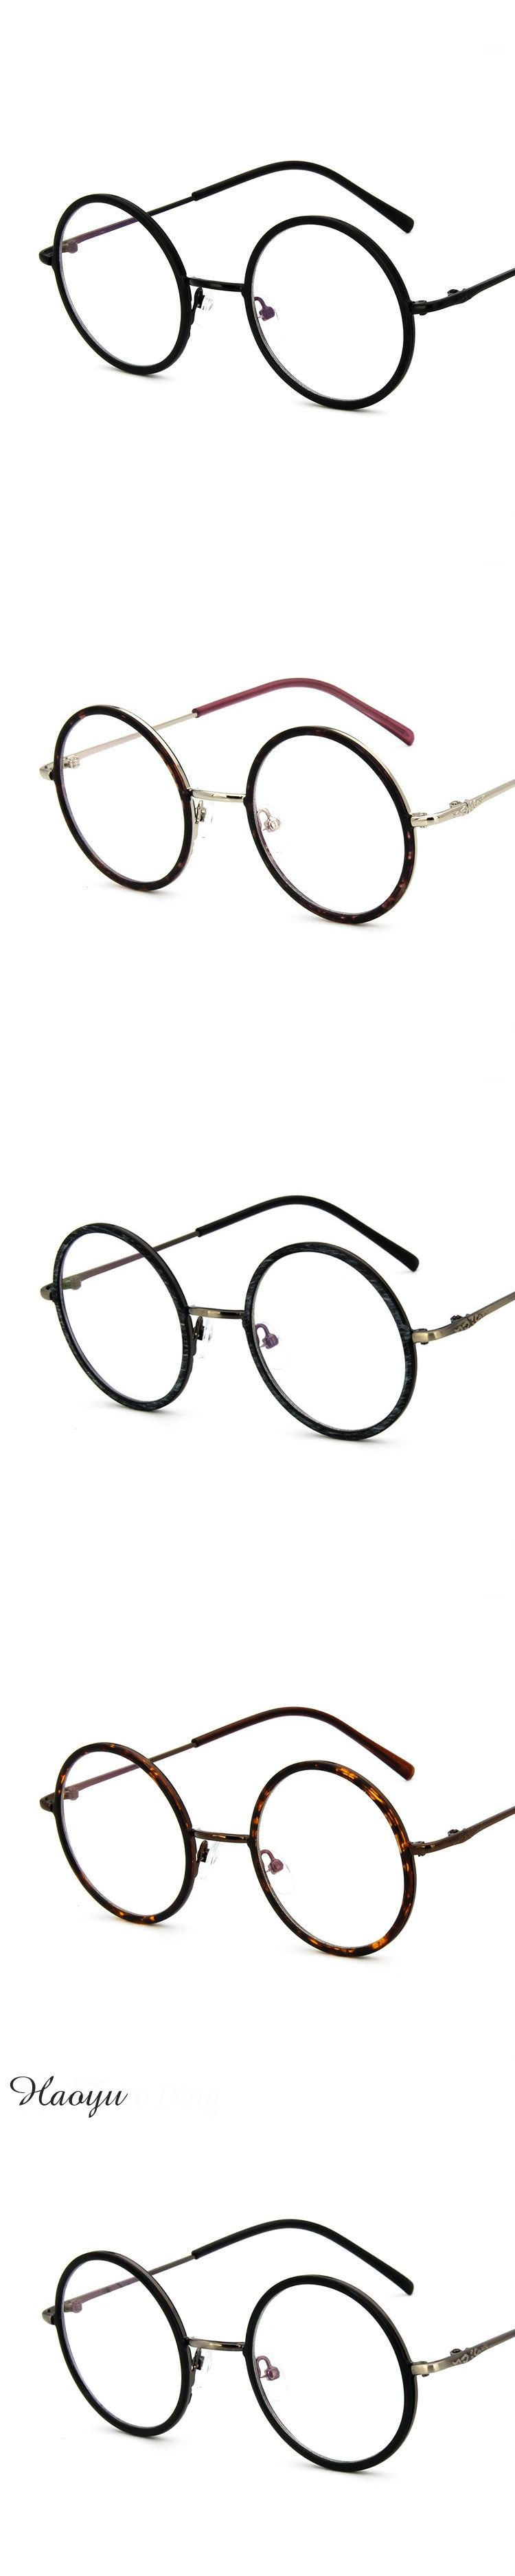 e8be99ad6a95 haoyu Men Big Round Glasses Frames Newest Purely Handmade Vintage Optical  Eye Frame Plain GlassES Fashion